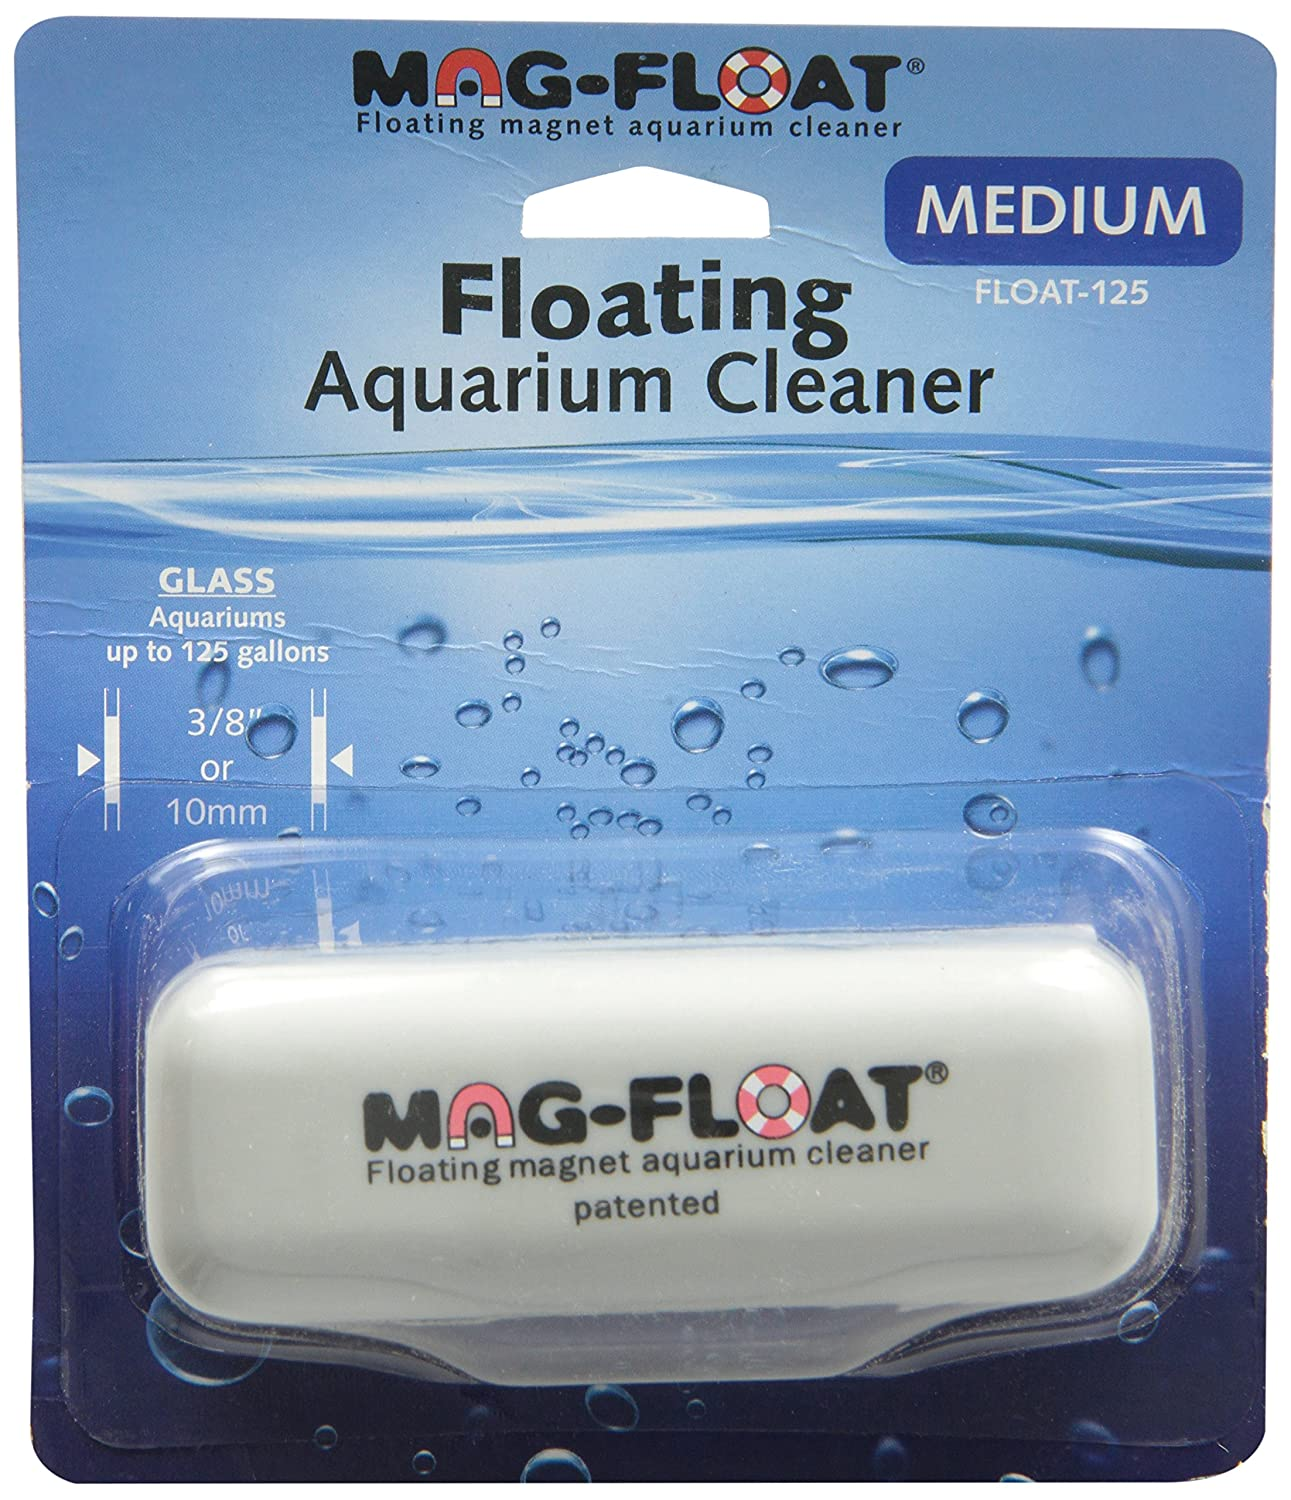 Magnetic floating bed a 1 6 million - Amazon Com Gulfstream Tropical Agu030sm Mag Float Glass Aquarium Cleaner Small Aquarium Algae Scrapers Pet Supplies